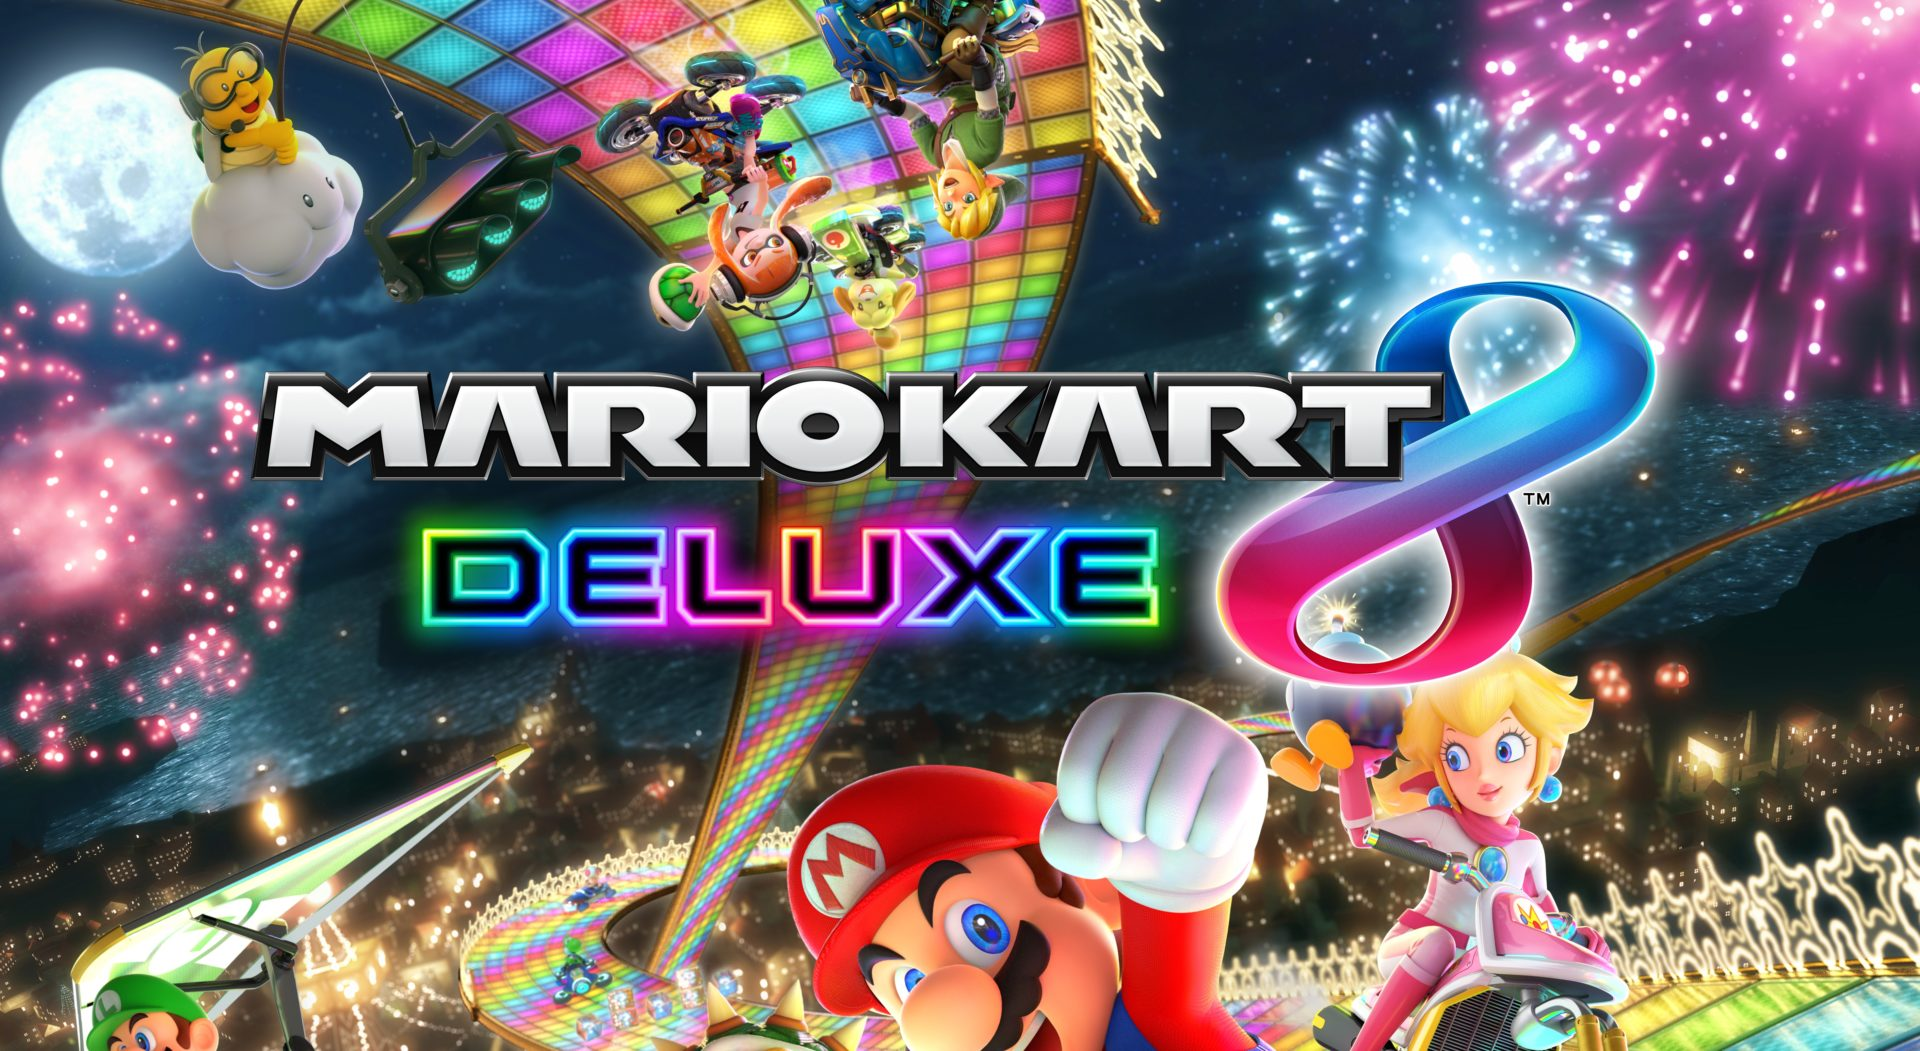 Latest Mario Kart 8 Deluxe Update Adds Video Captures And Other Features